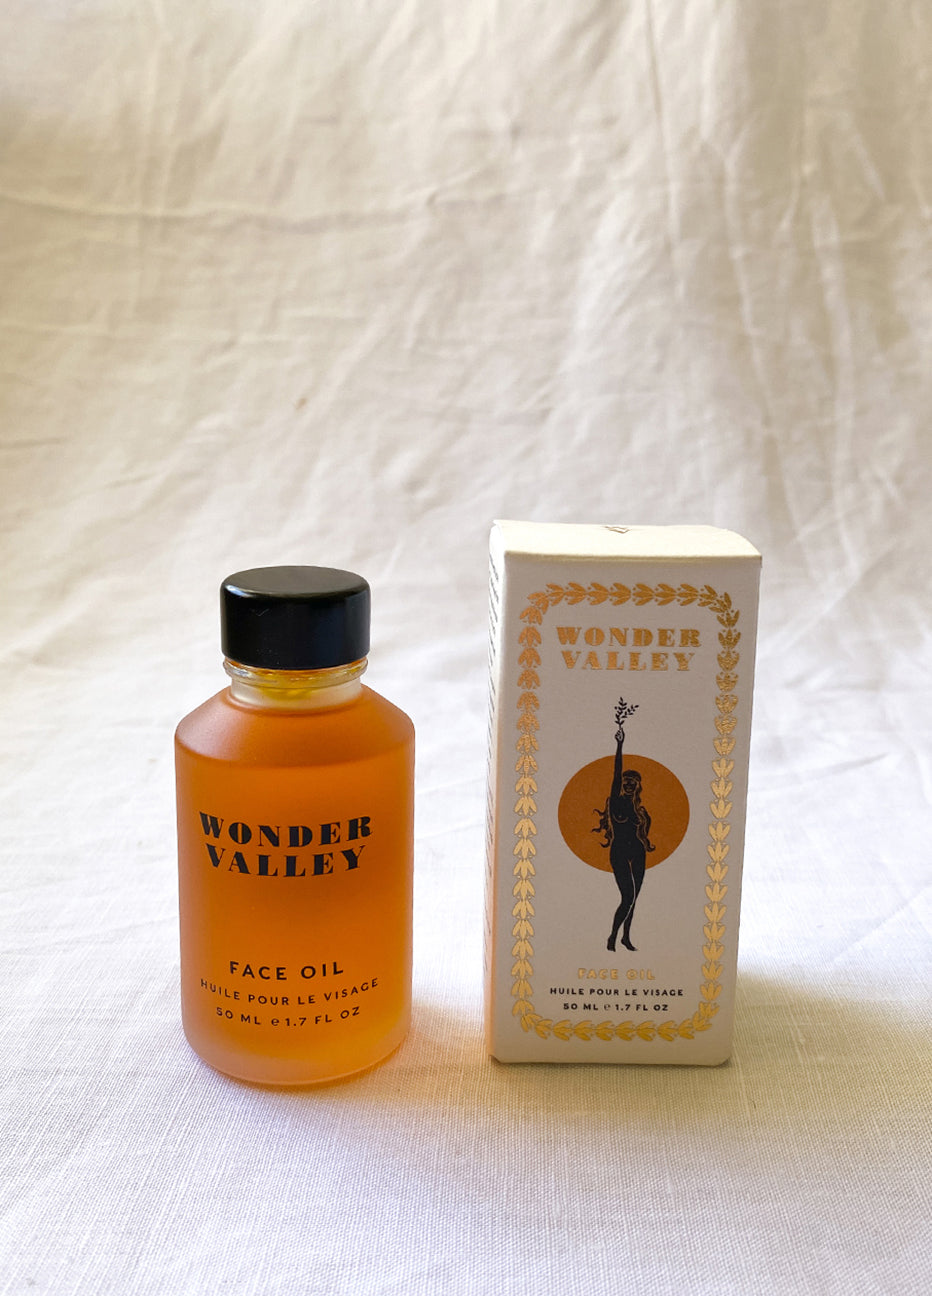 Wonder Valley Face Oil